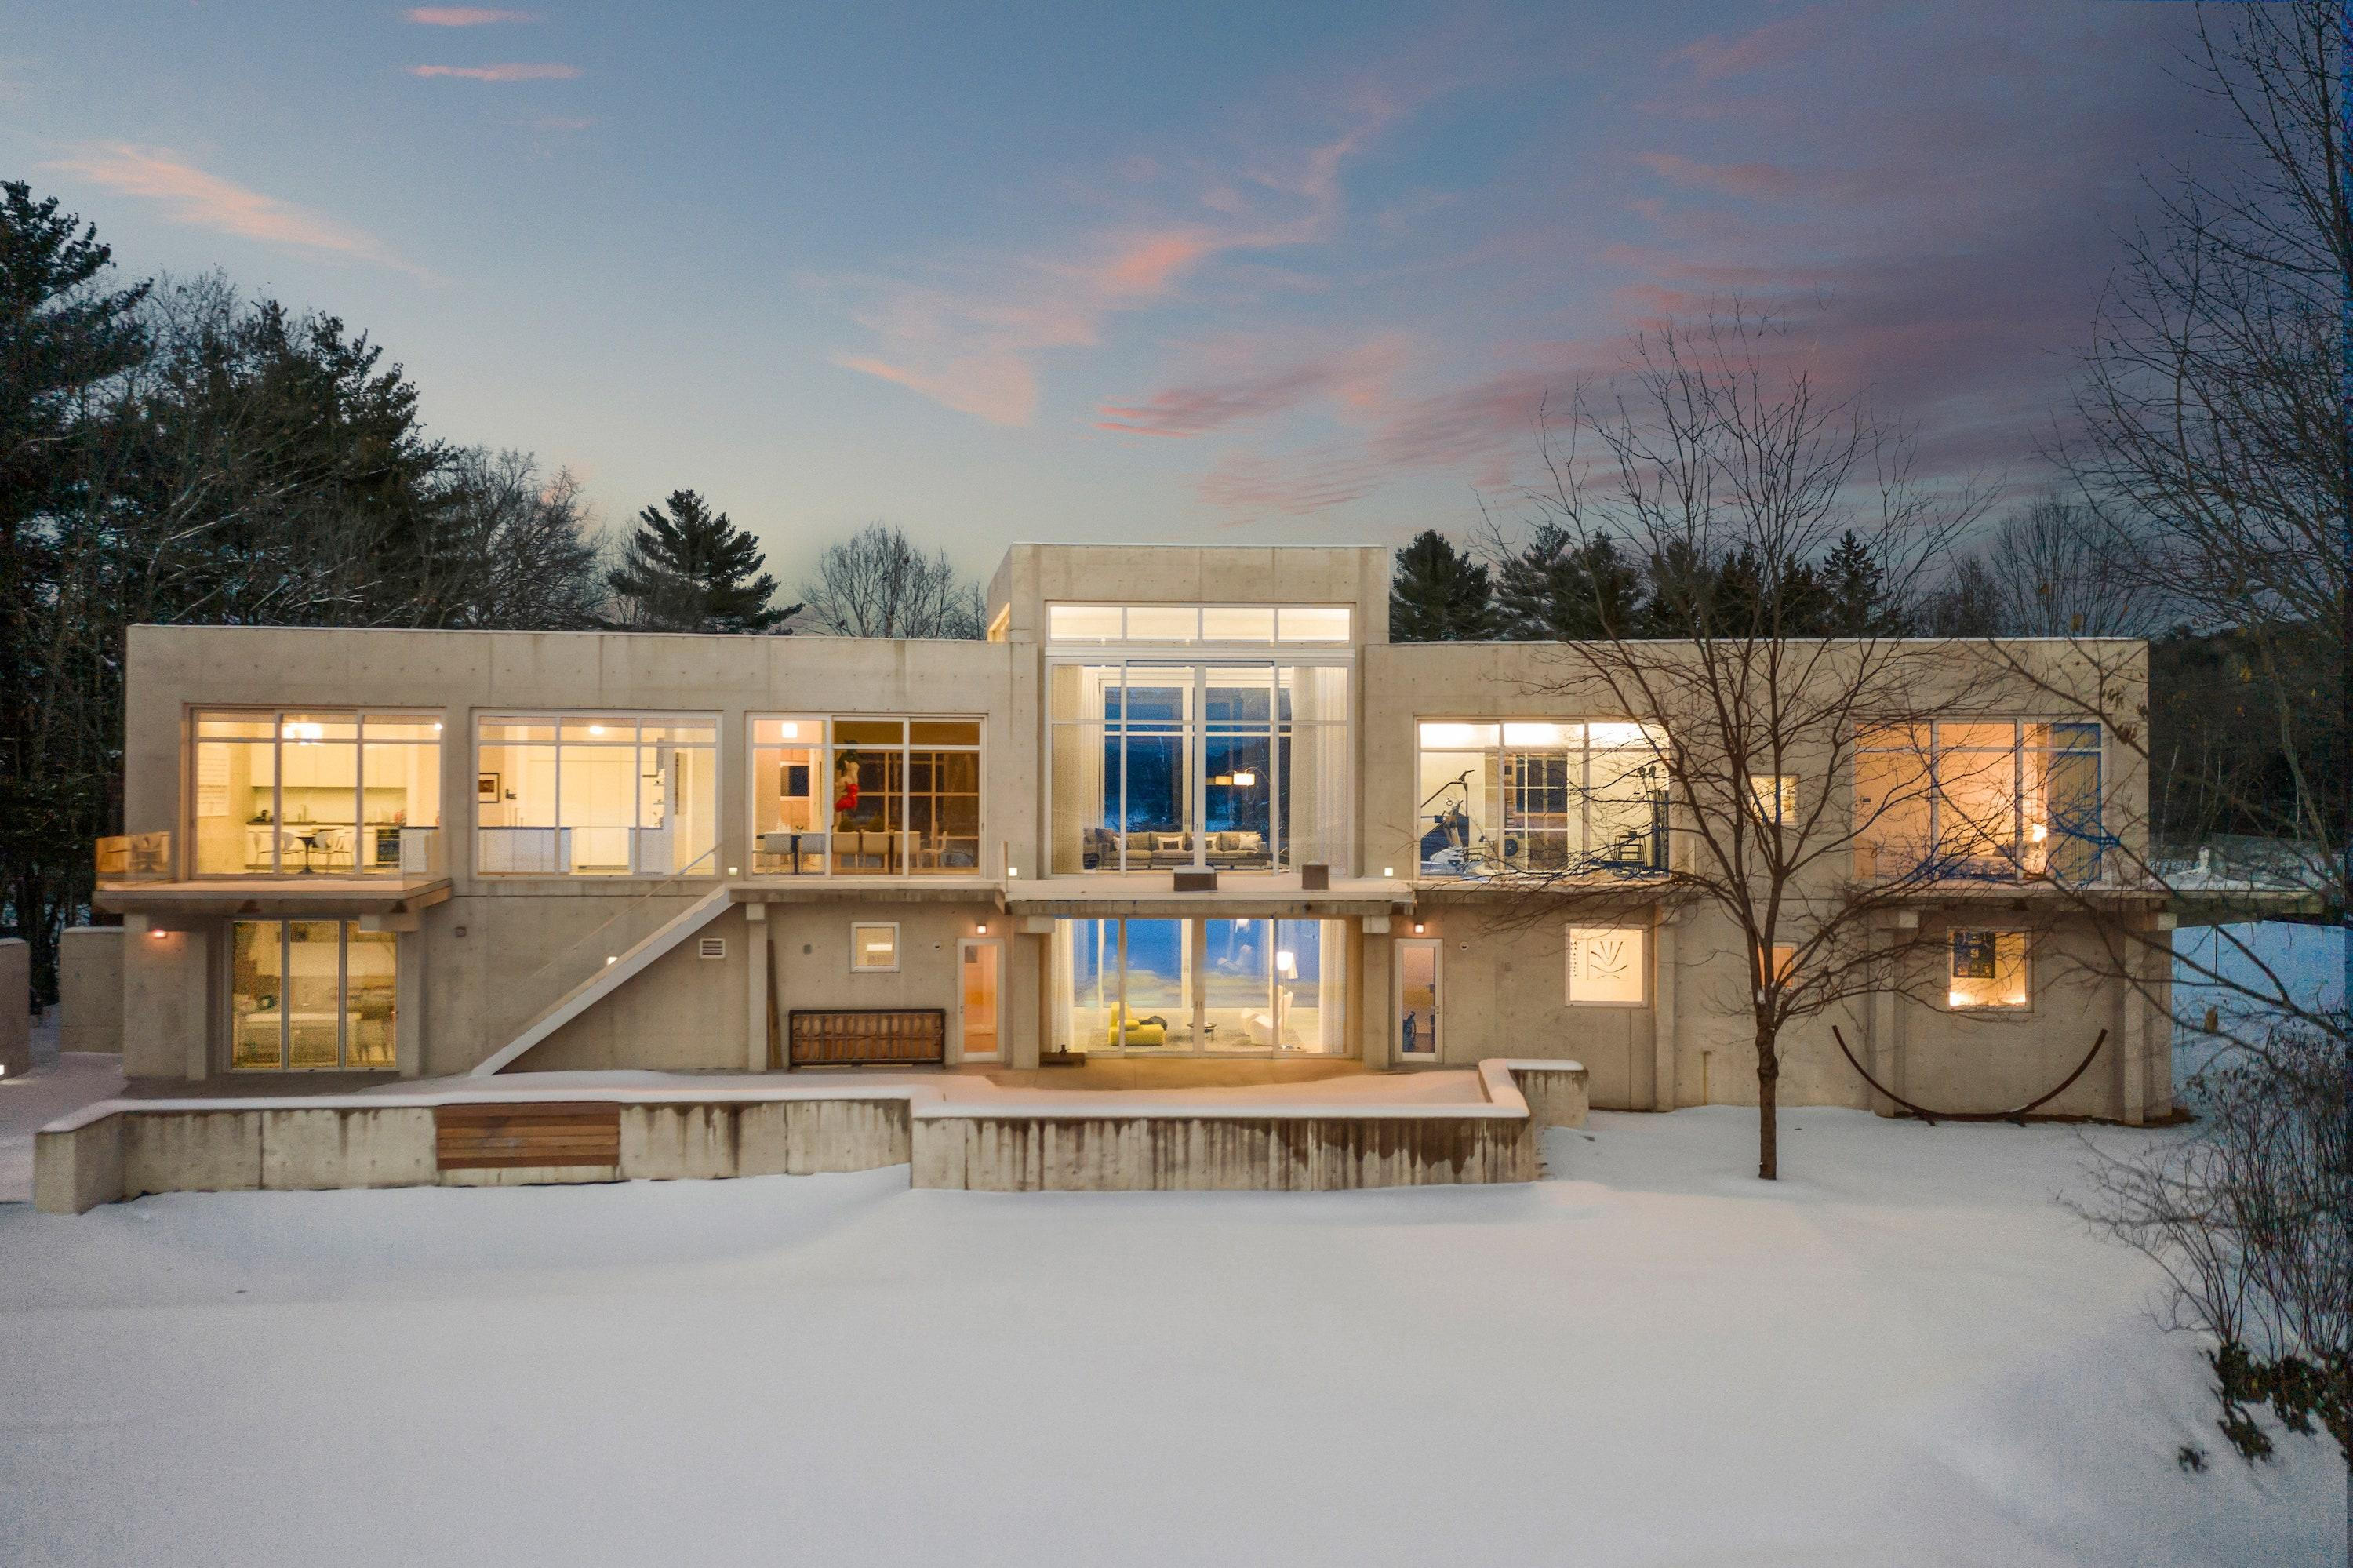 """<a href=""""https://www.sothebysrealty.com/eng/sales/detail/180-l-4402-32p48v/1224-route-5-route-norwich-vt-05055"""" rel=""""nofollow noopener"""" target=""""_blank"""" data-ylk=""""slk:Location: Norwich, Vermont"""" class=""""link rapid-noclick-resp"""">Location: Norwich, Vermont</a><br> Price: $ 4,700,000<br> Bed/Baths: 5 bedrooms; 4 full and 2 partial bathrooms<br> Interior Square Footage: 8,100<br> Lot Size: 3.6 acres"""